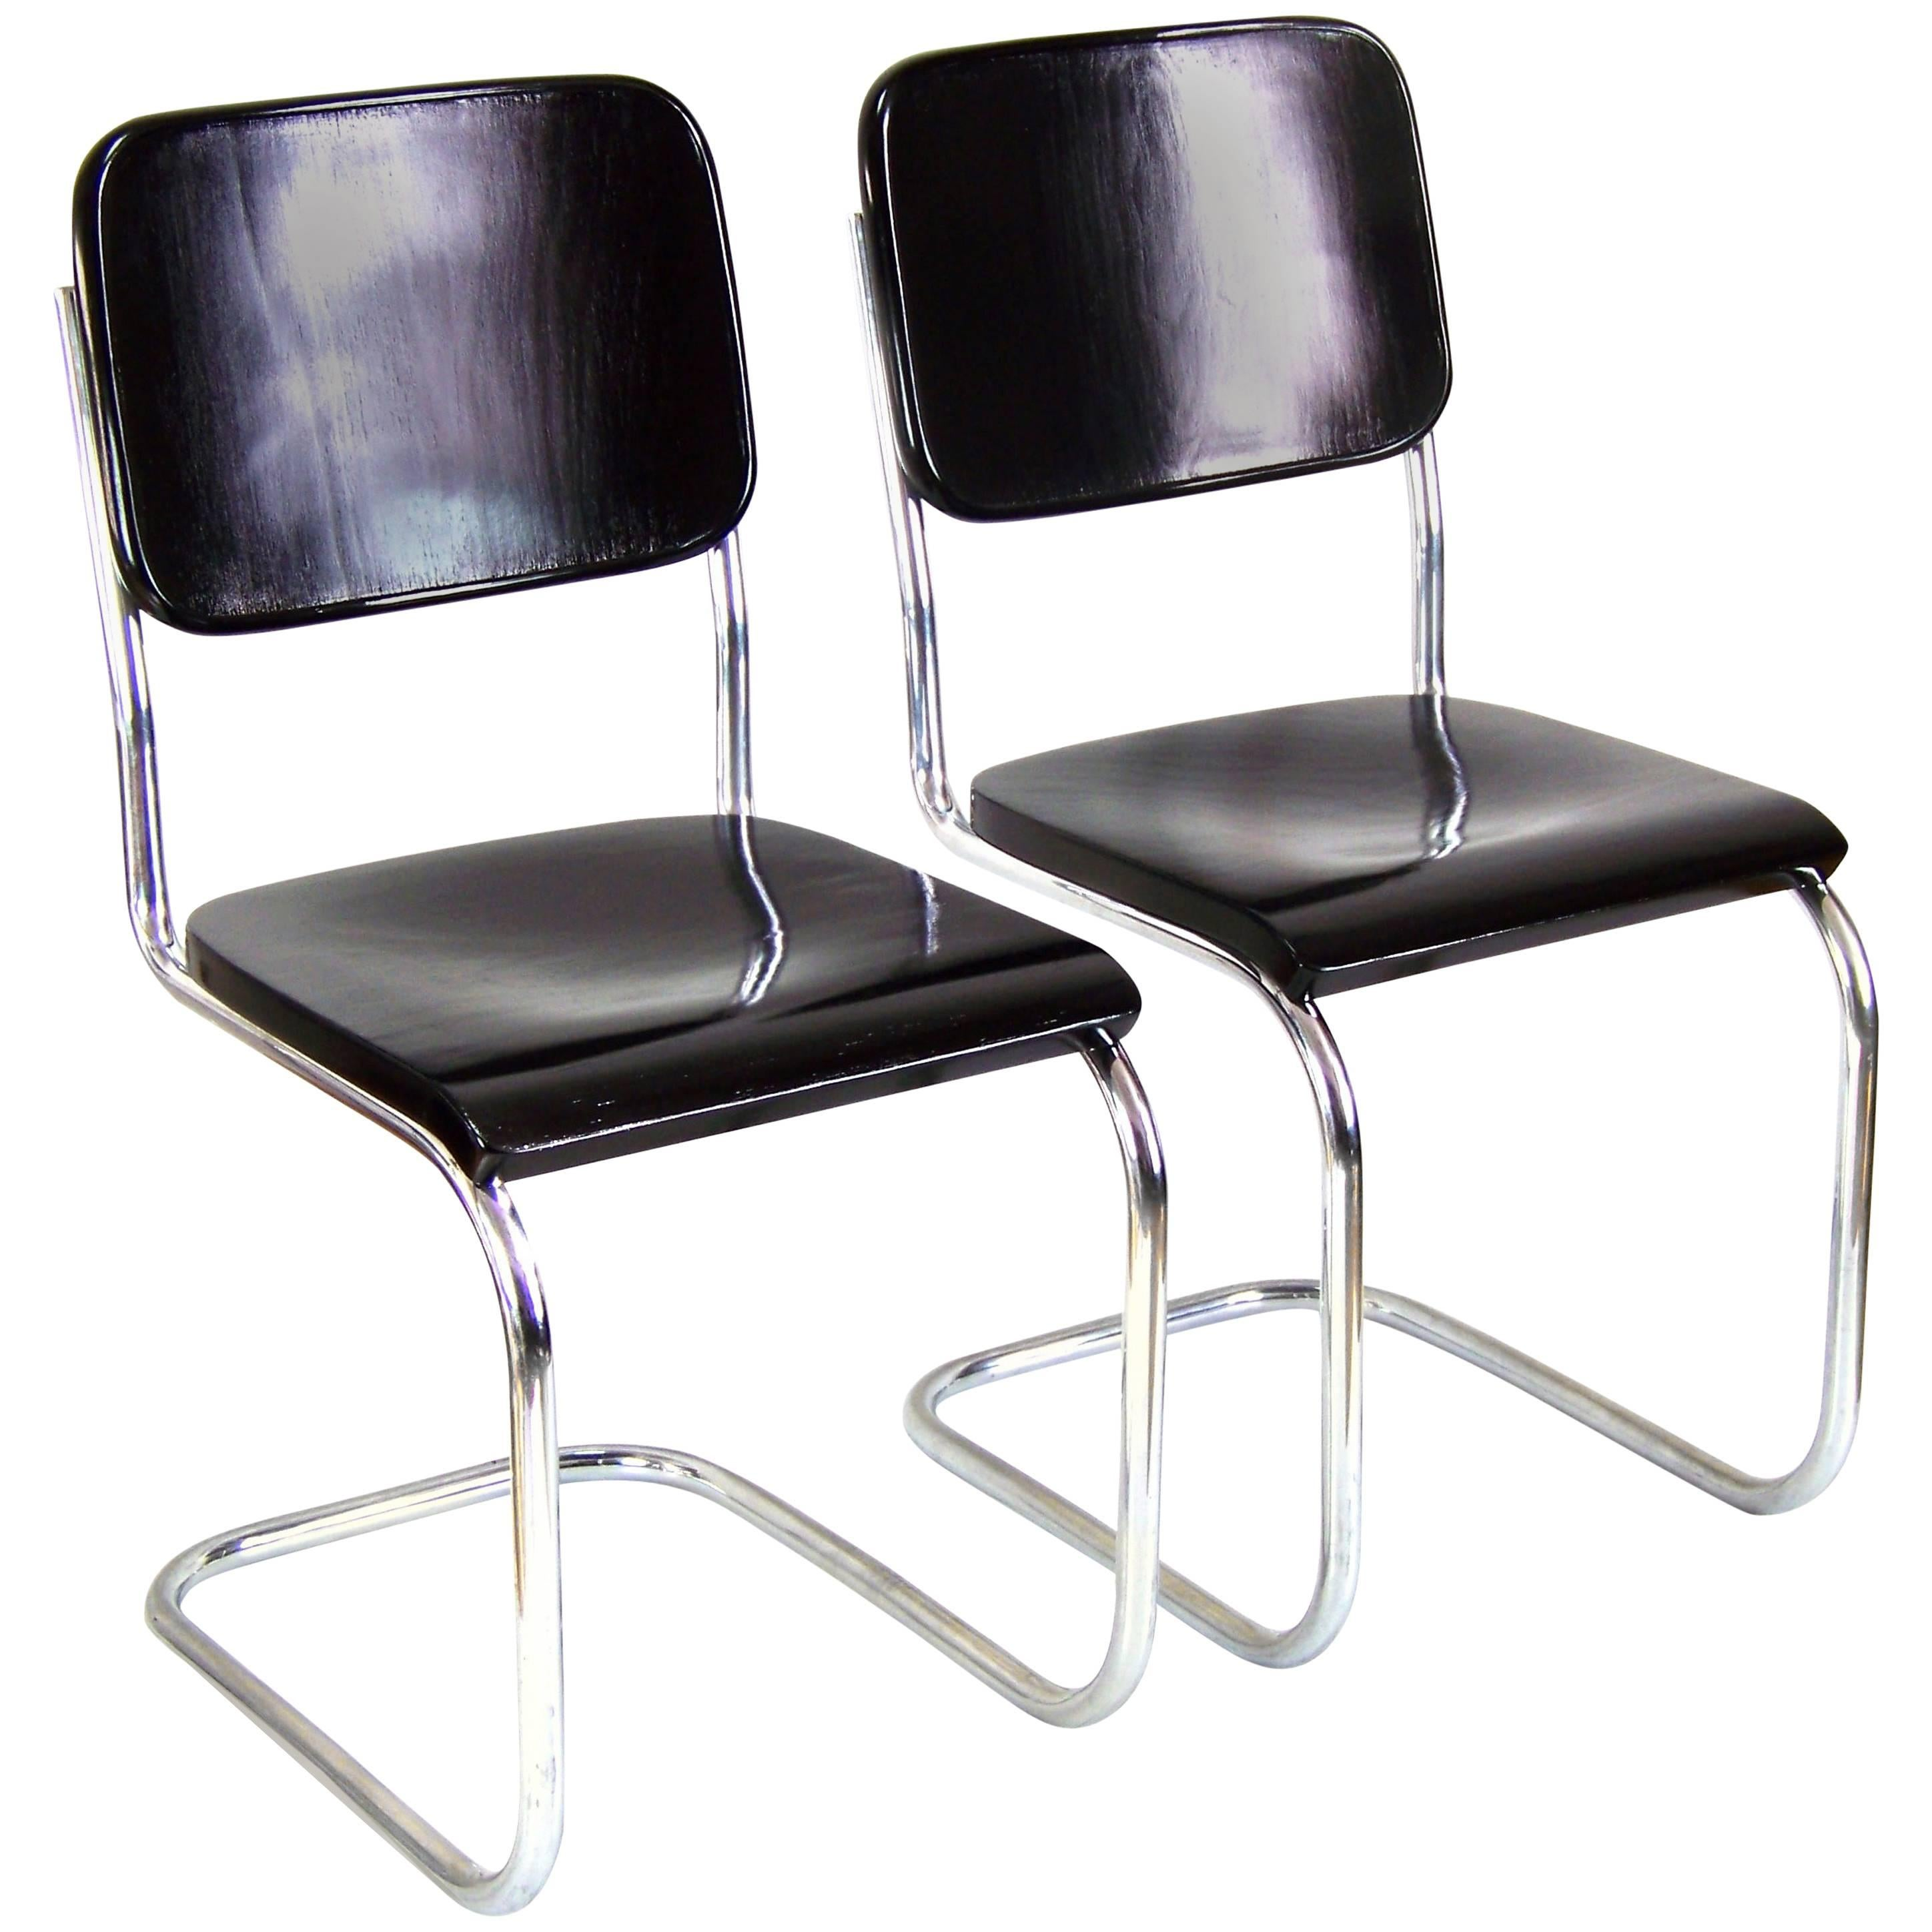 Pair Of Bauhaus Chrome Chairs By Mart Stam Circa 1930 For Sale At